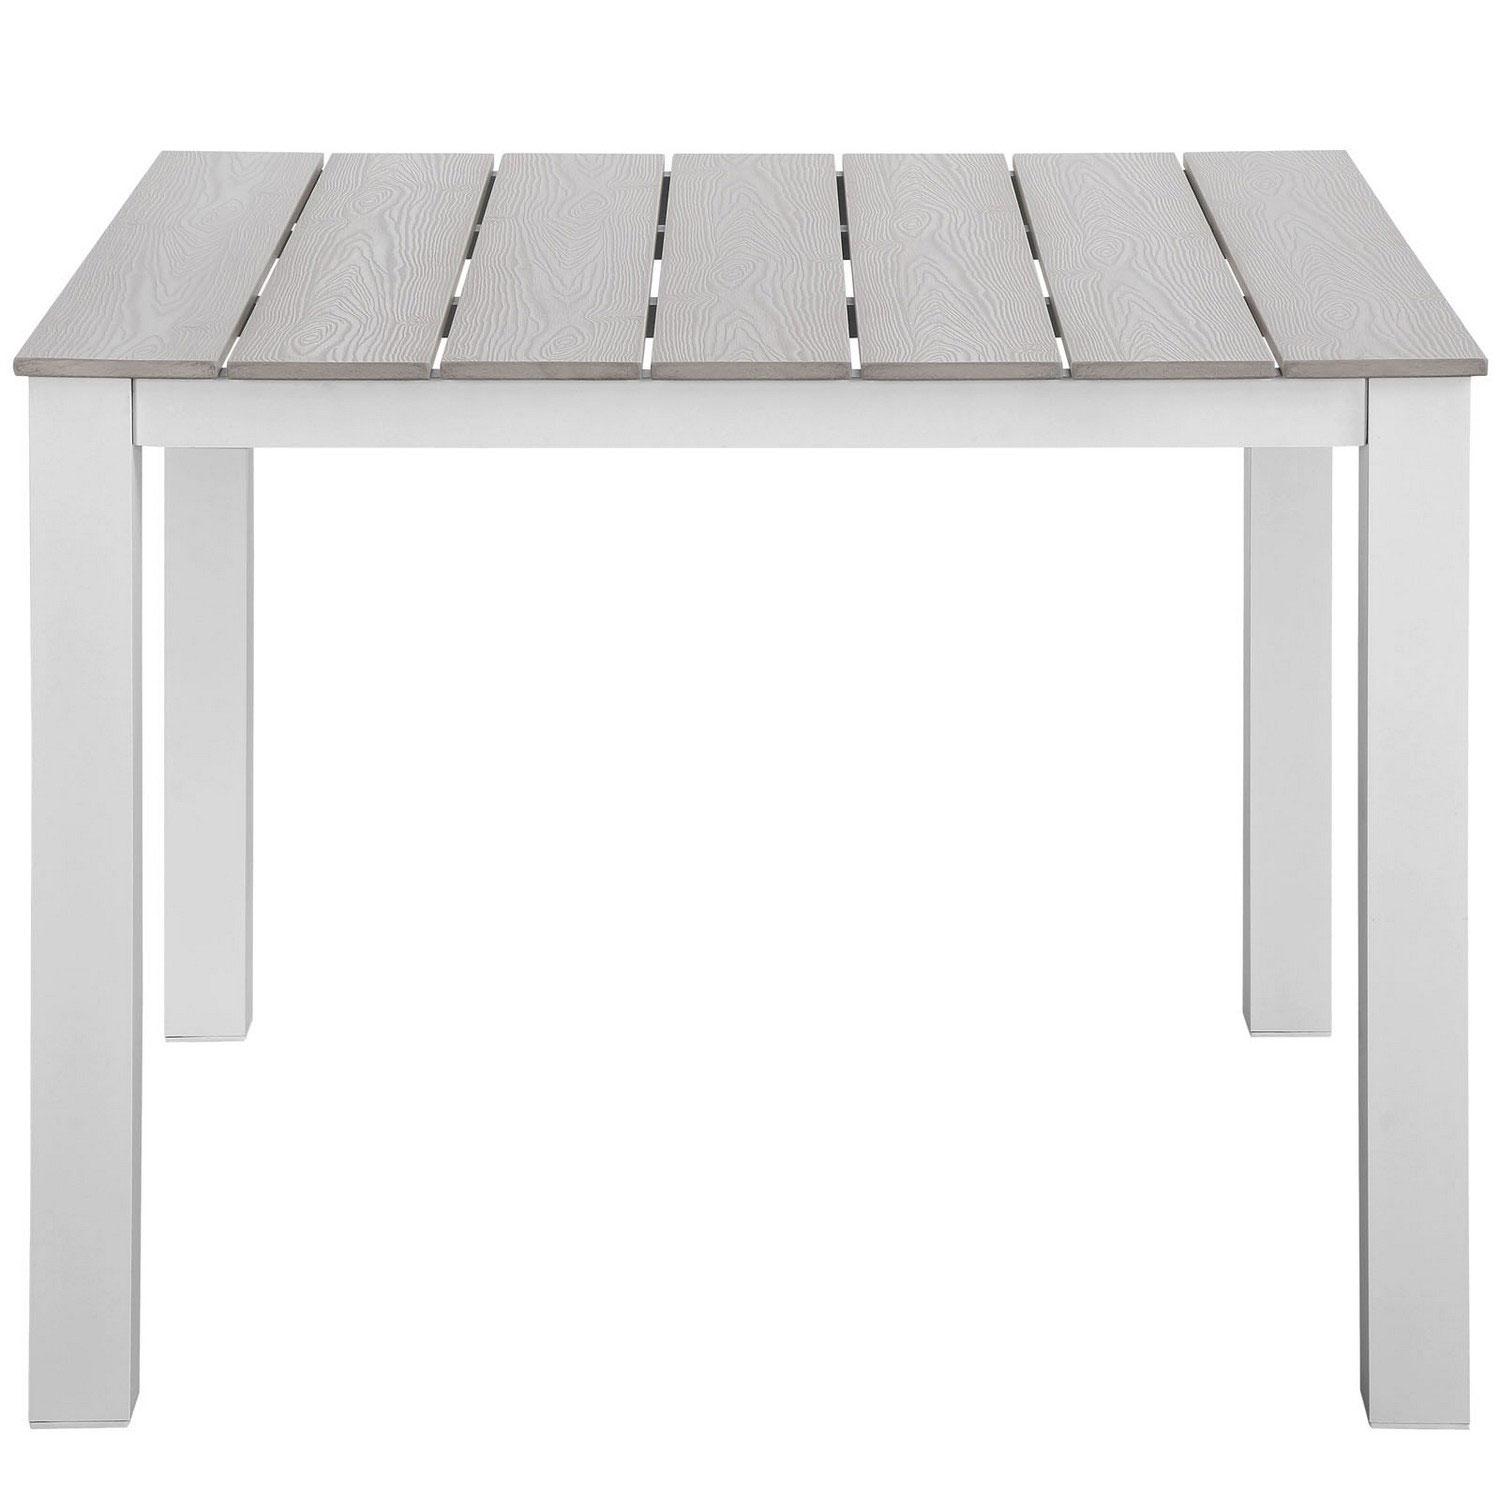 Modway Maine 40 Outdoor Patio Dining Table - White/Light Gray